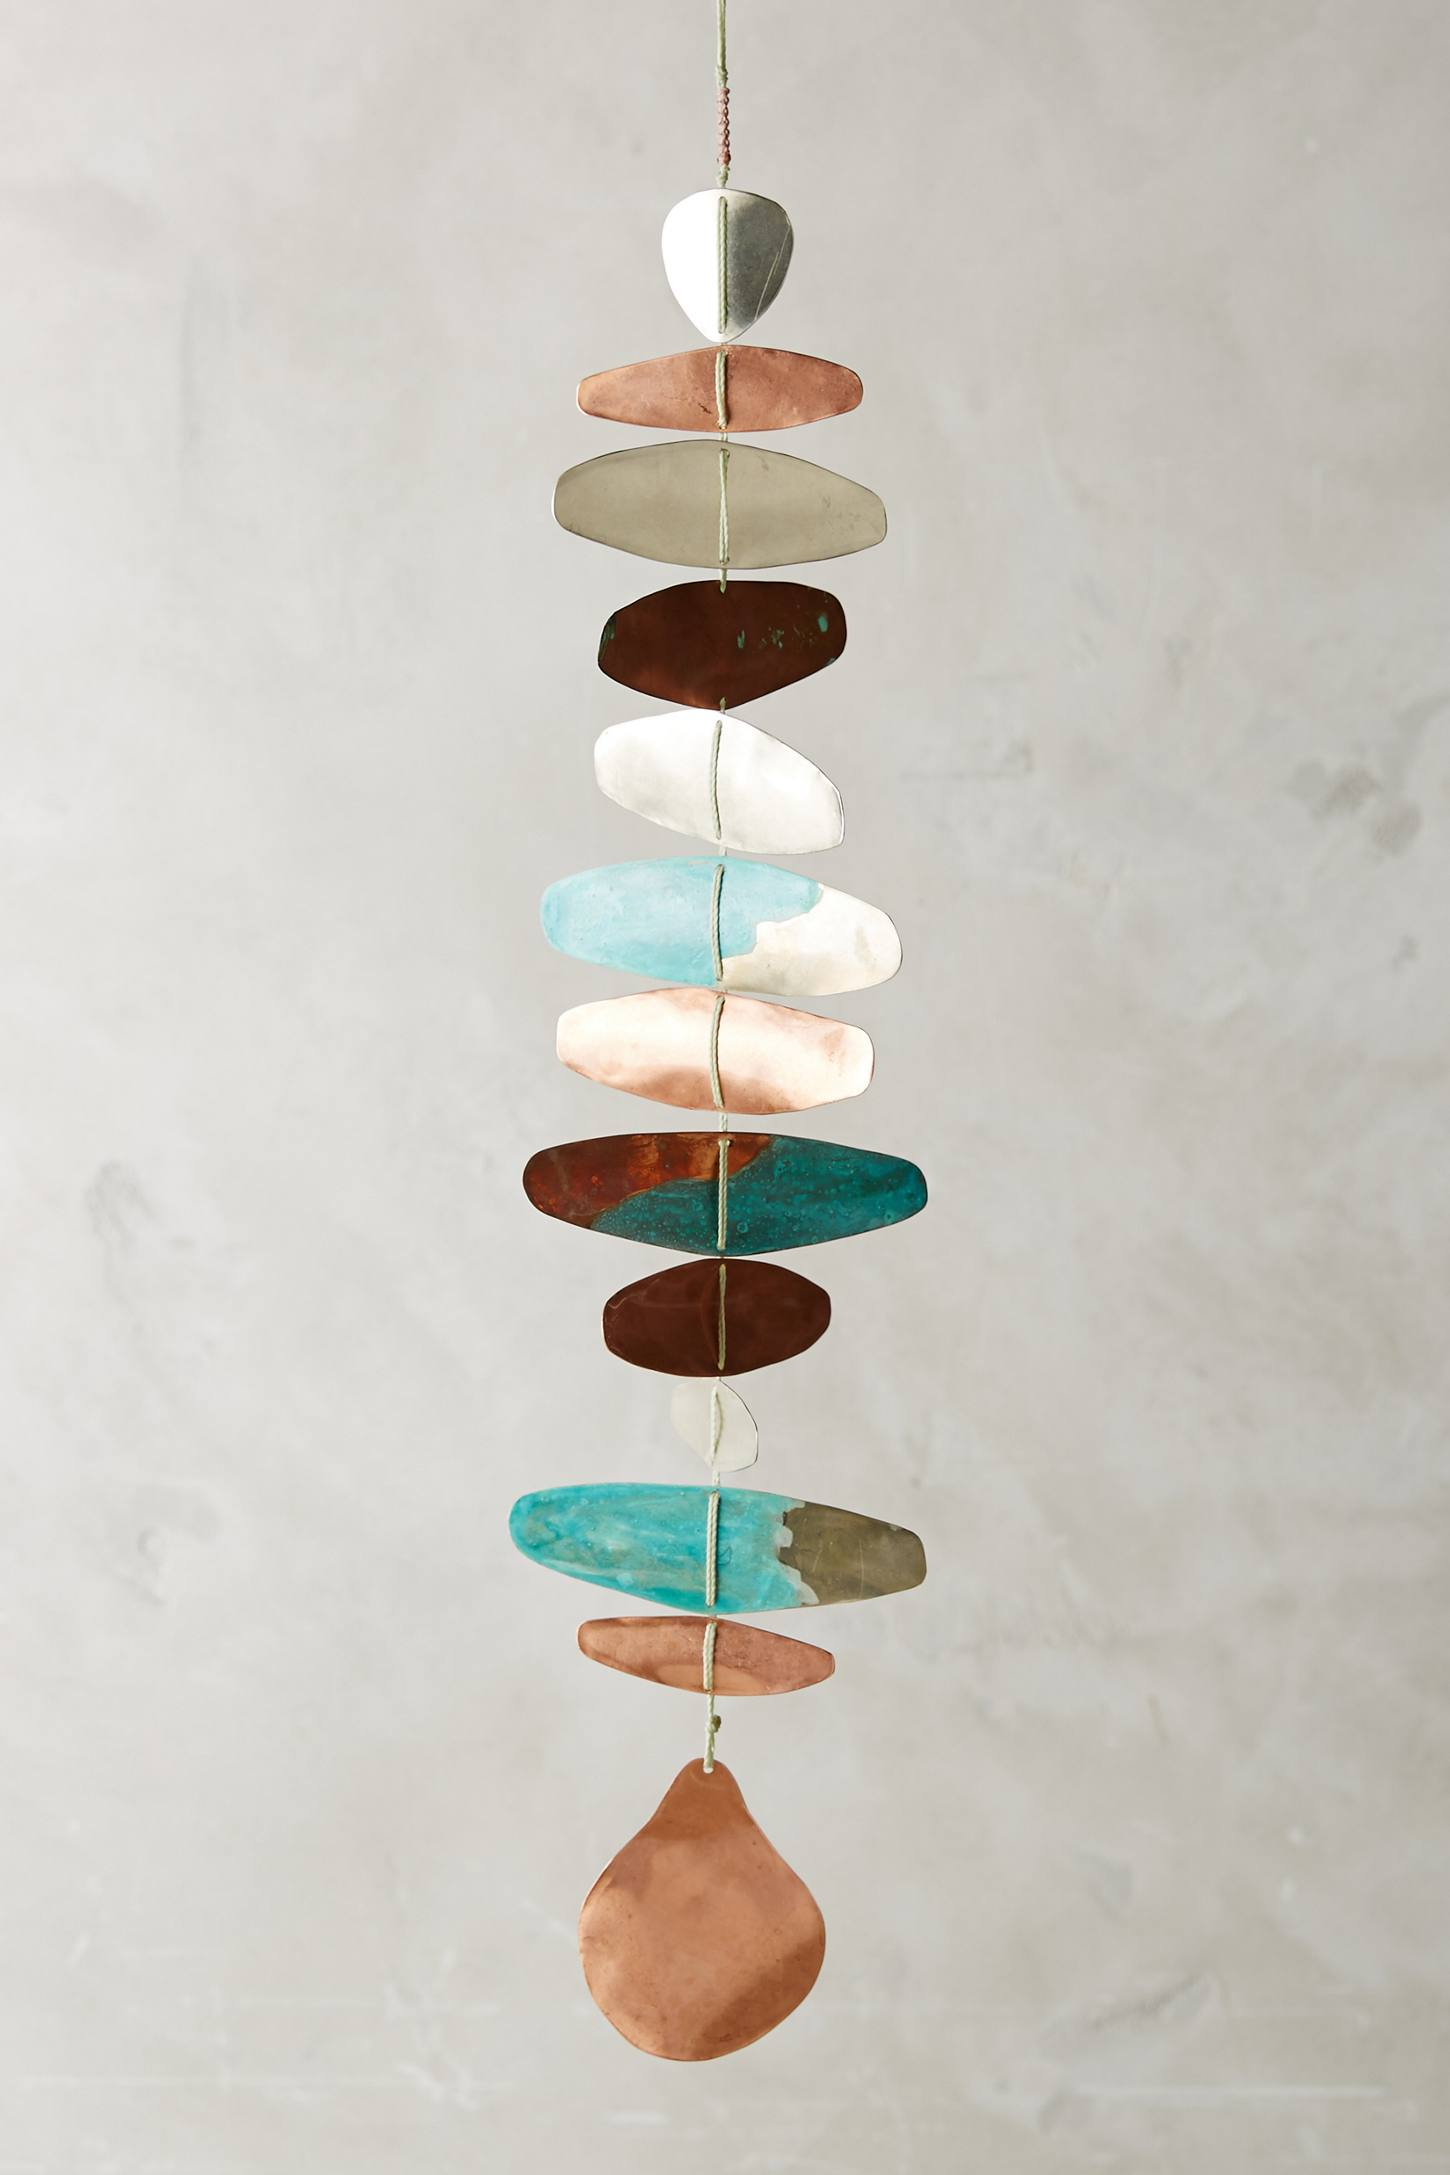 Copper art from Anthropologie